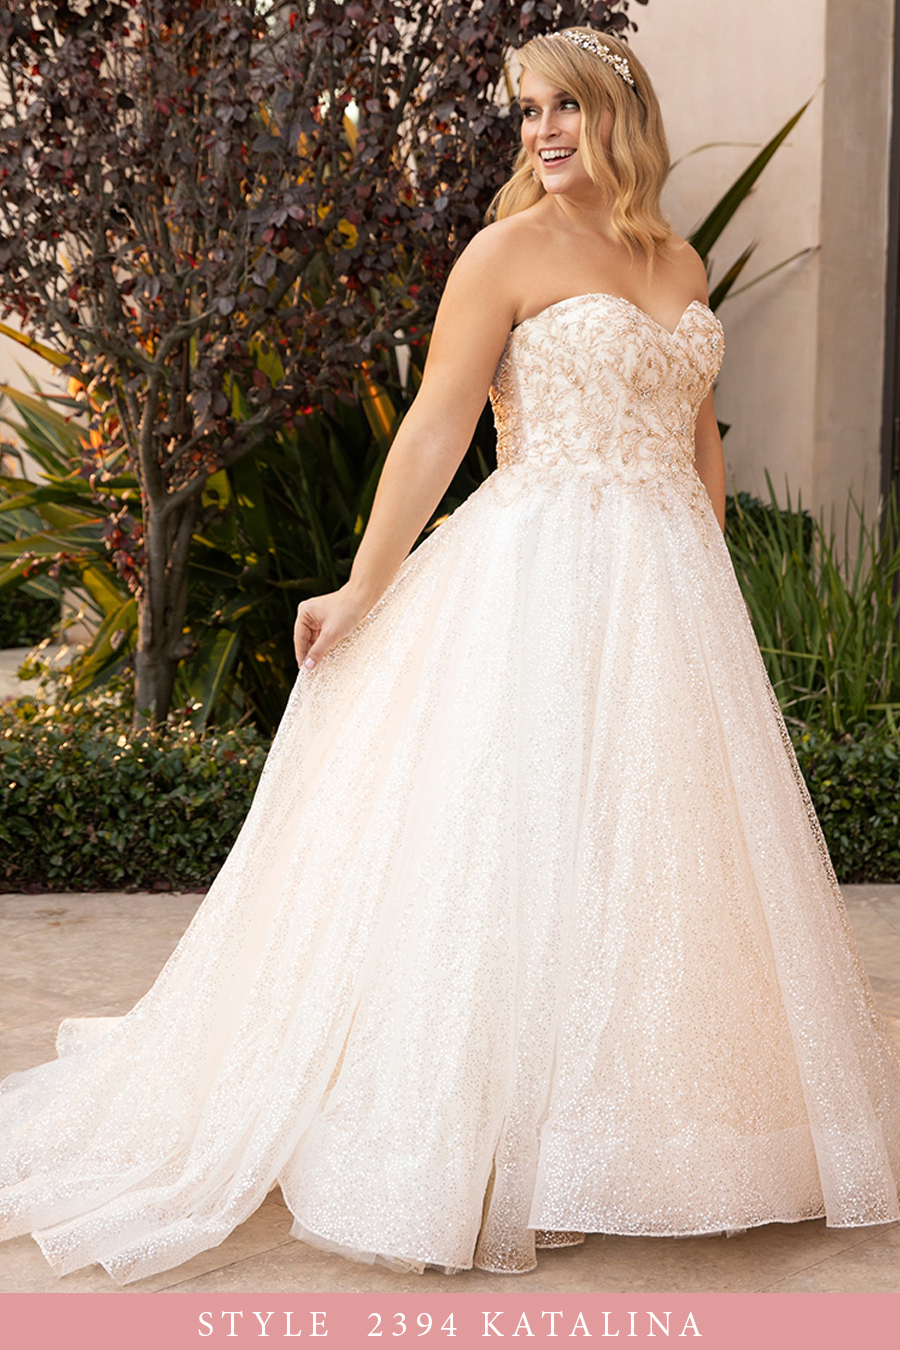 Casablanca Bridal's NEW Fall 2019 Collection: Forever Yours | New Wedding Dresses